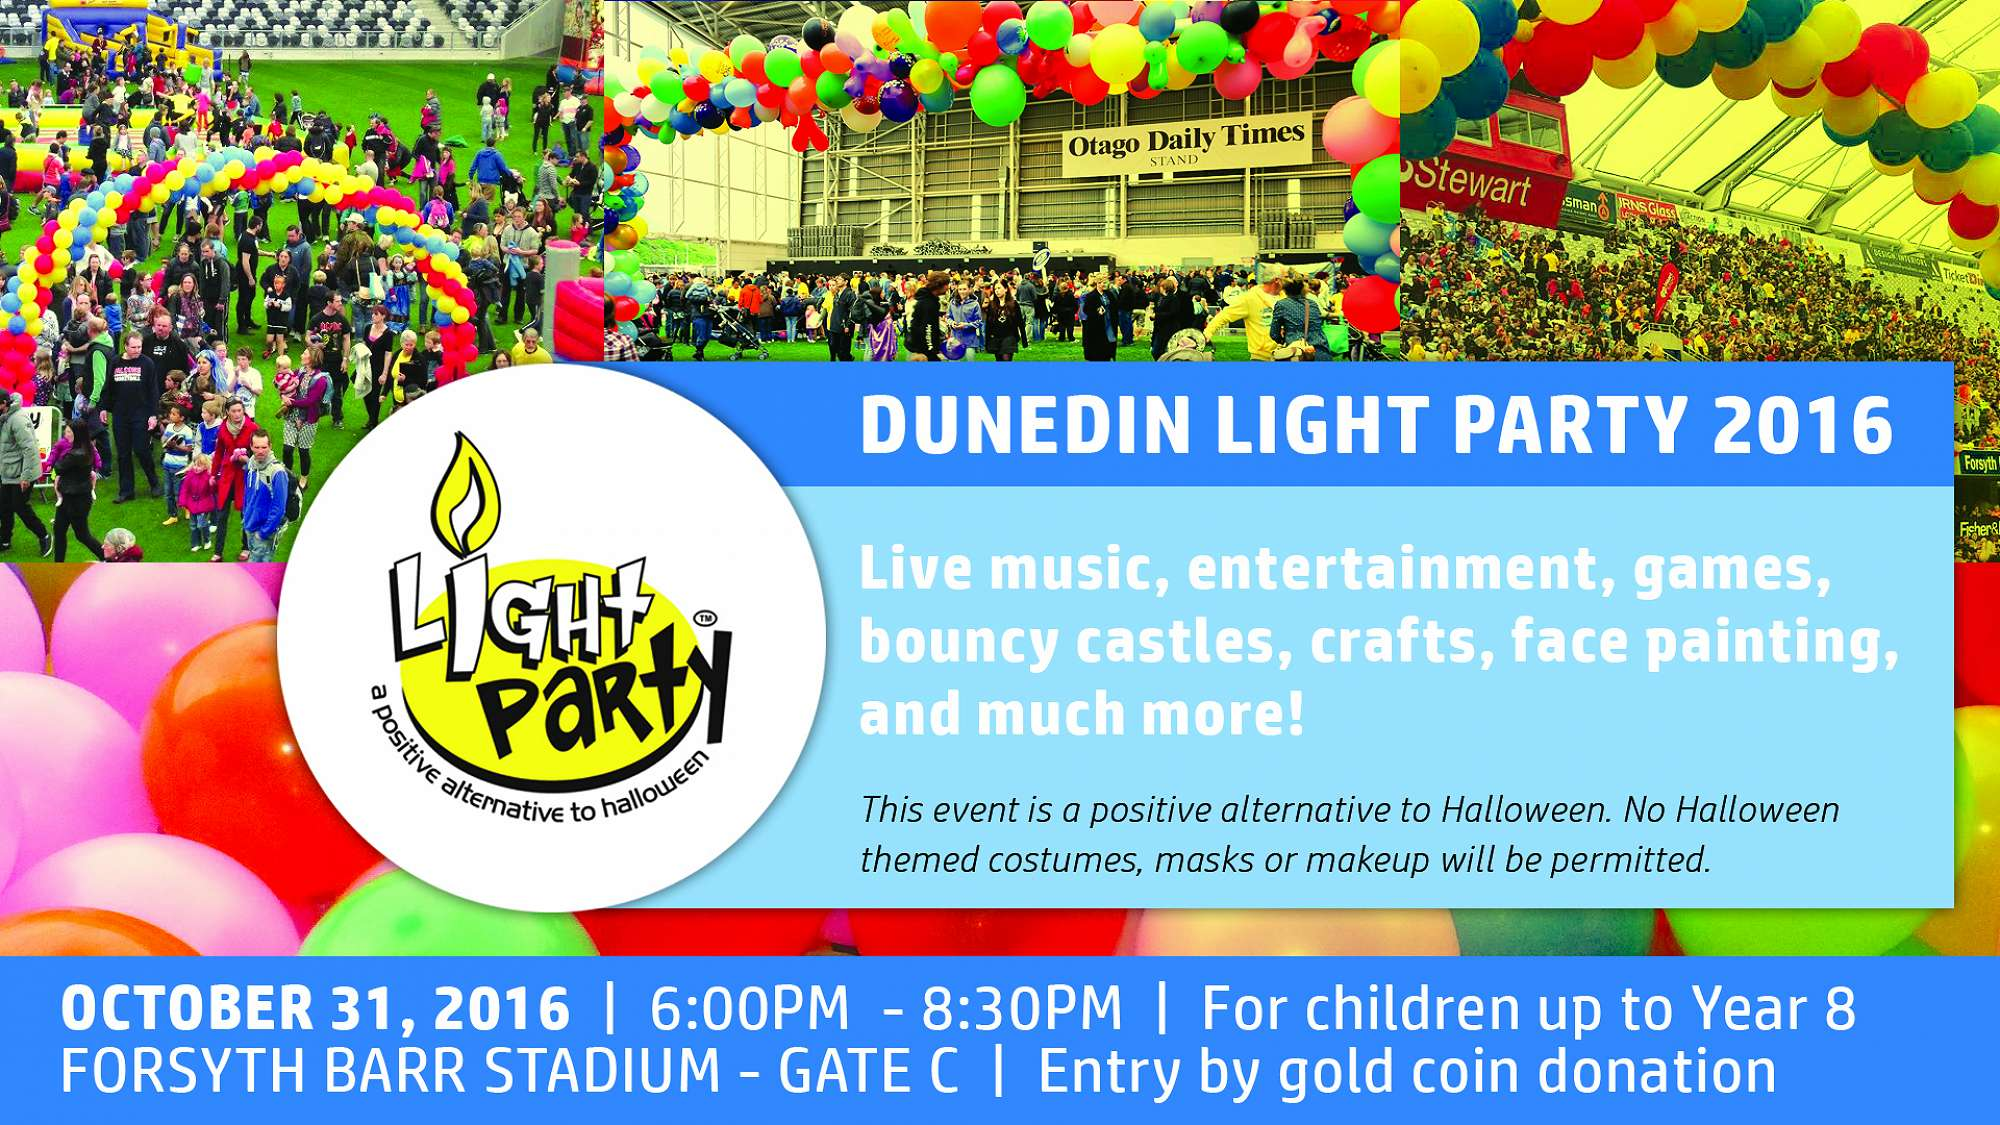 2016 Dunedin Light Party